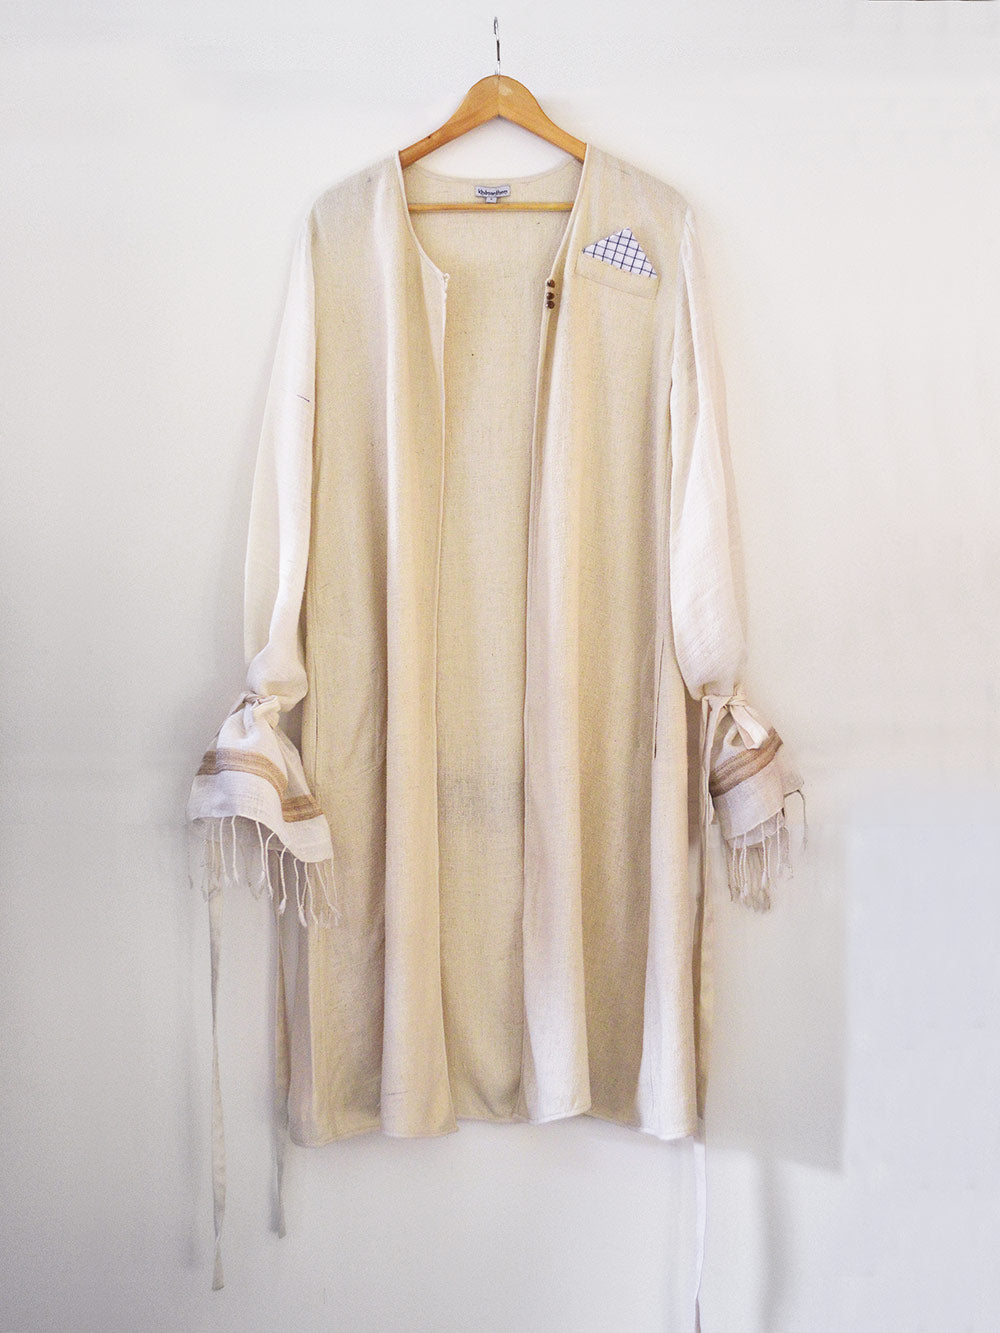 off white handwoven silk coat, designed by Khumanthem Atelier